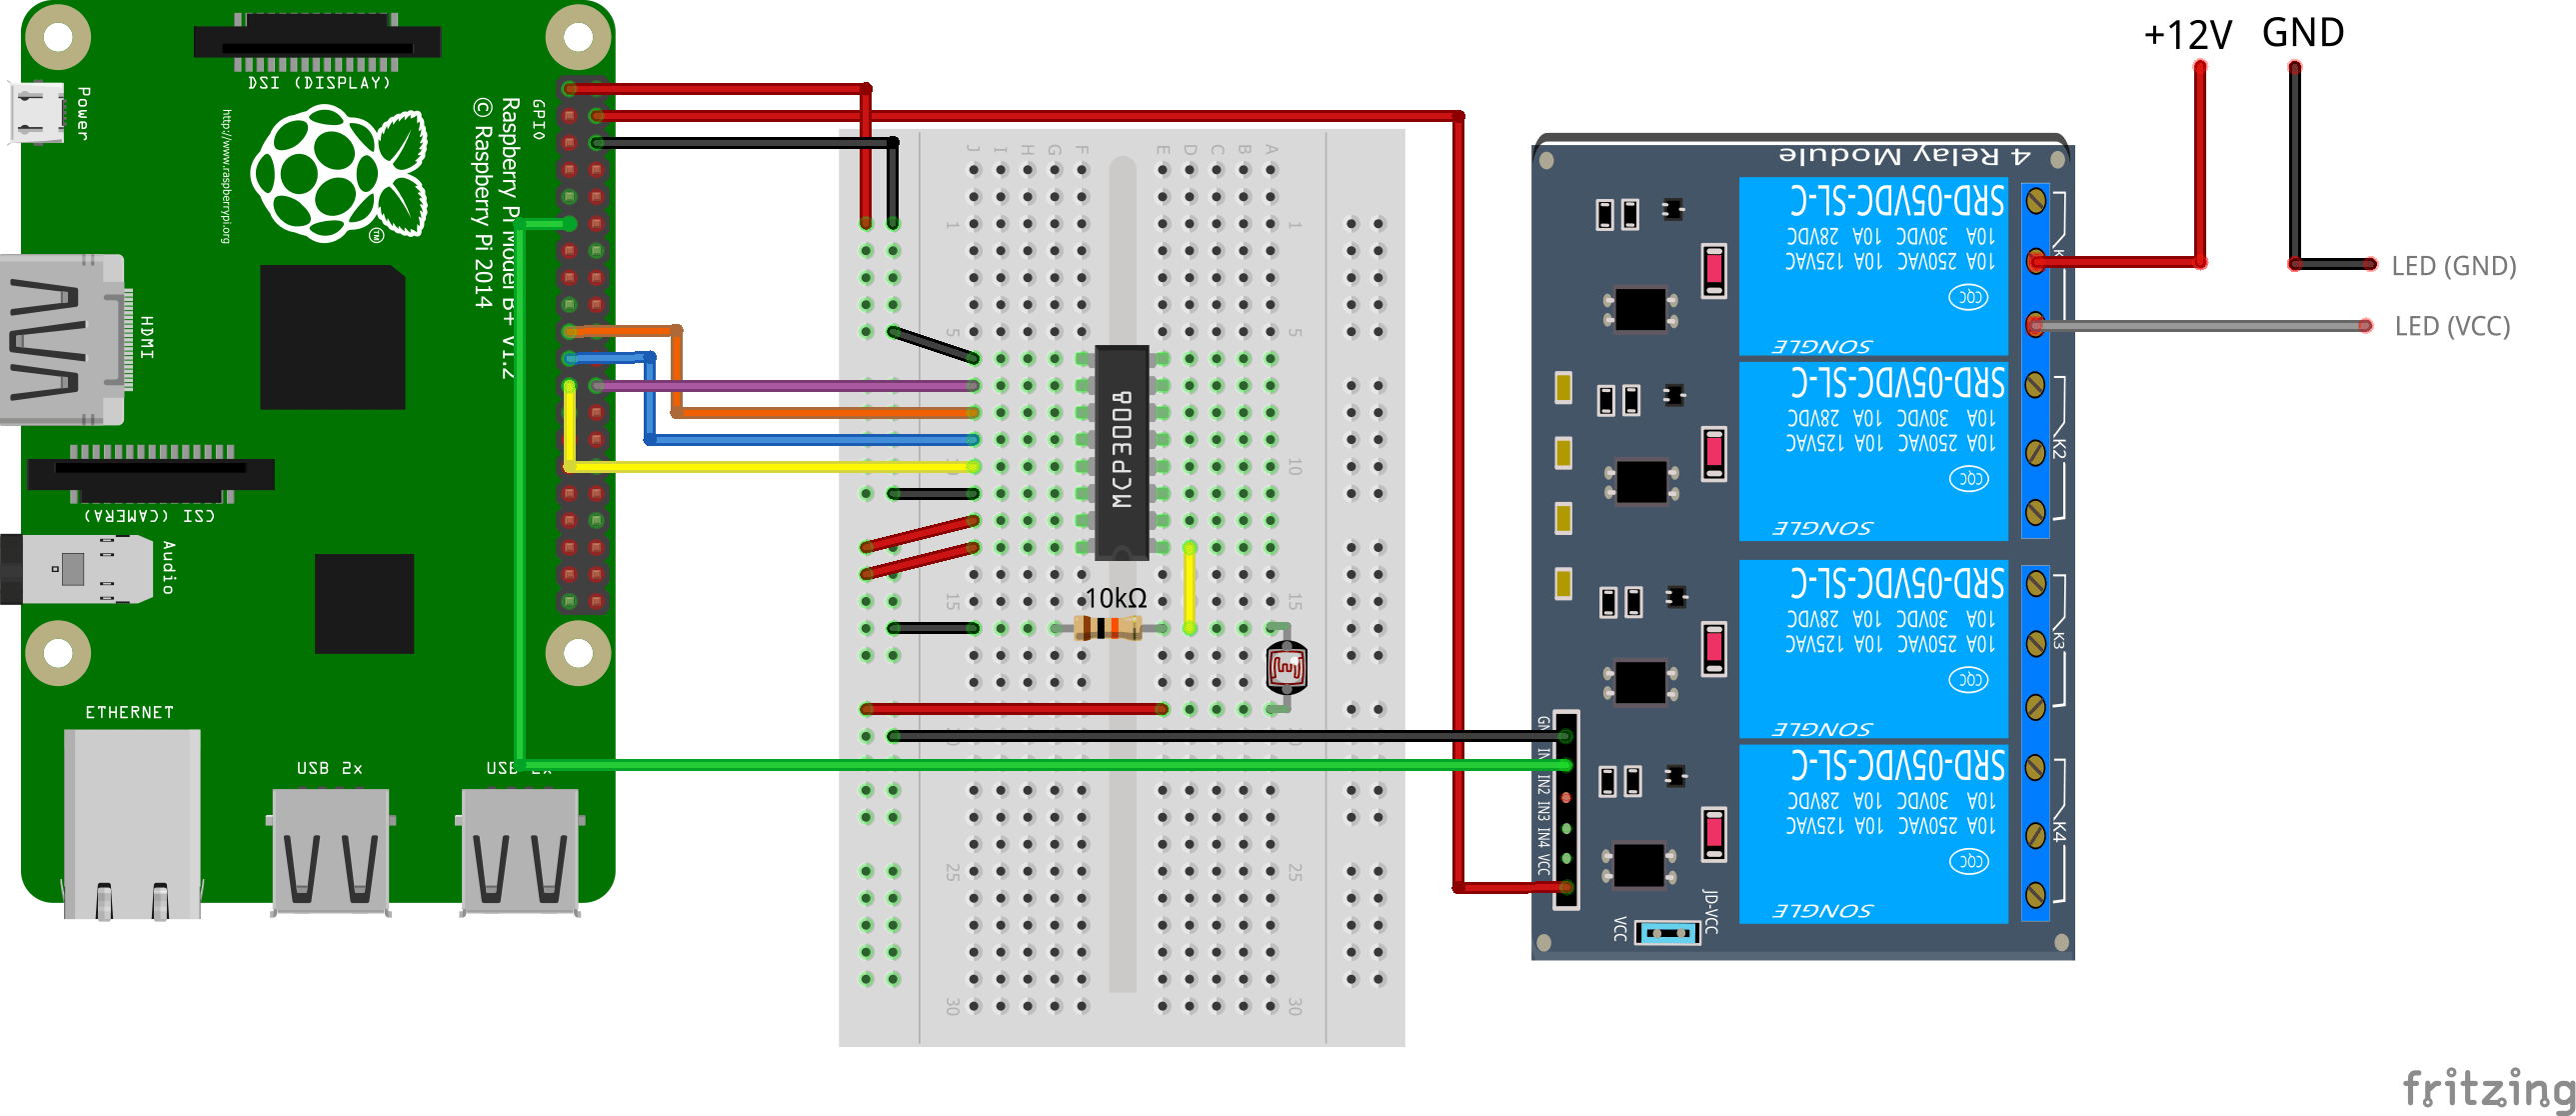 110 Volt Water Heater Wiring Diagram Build Your Own Automatic Raspberry Pi Greenhouse